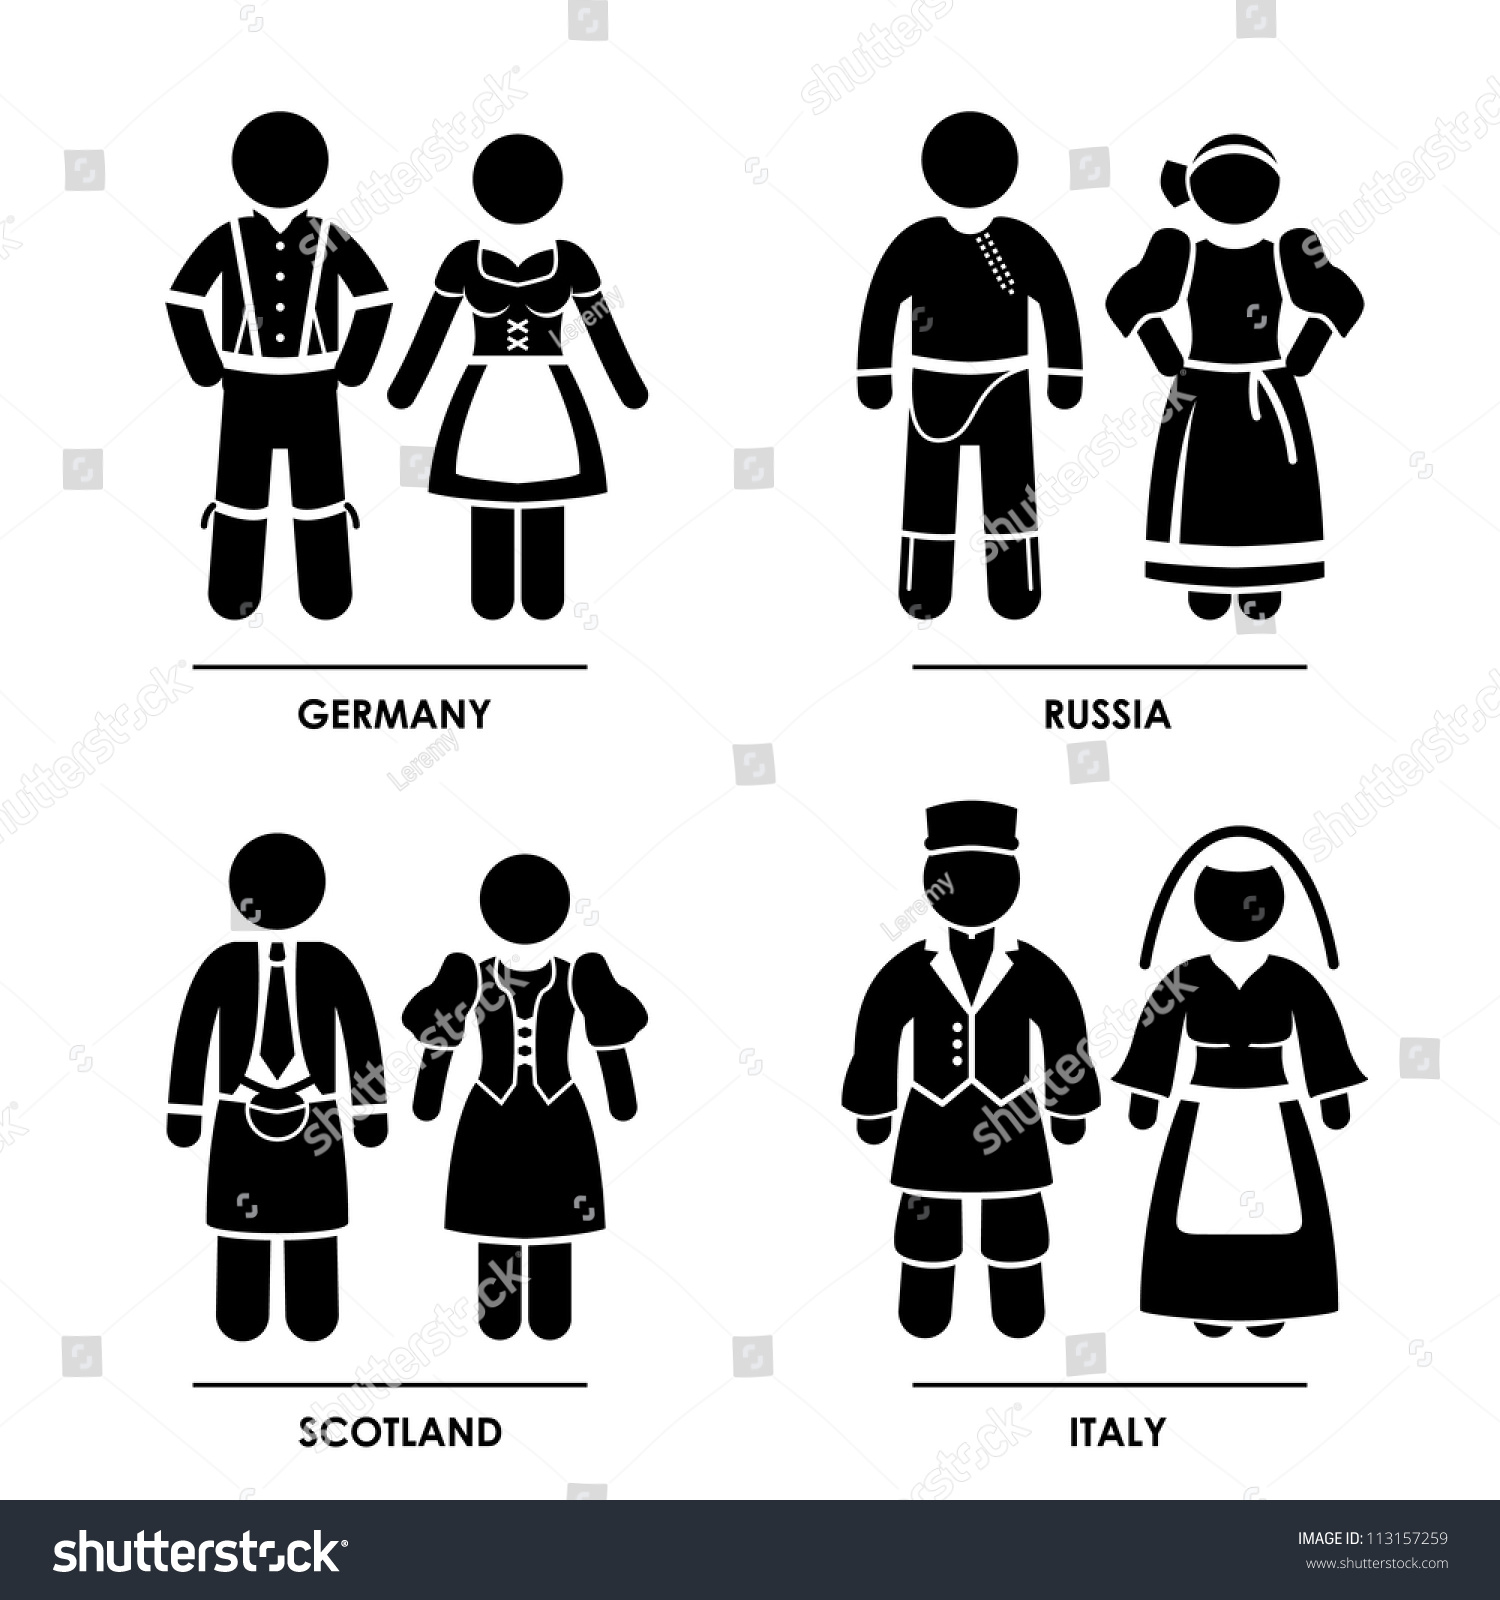 Traditional italian clothing for men and women